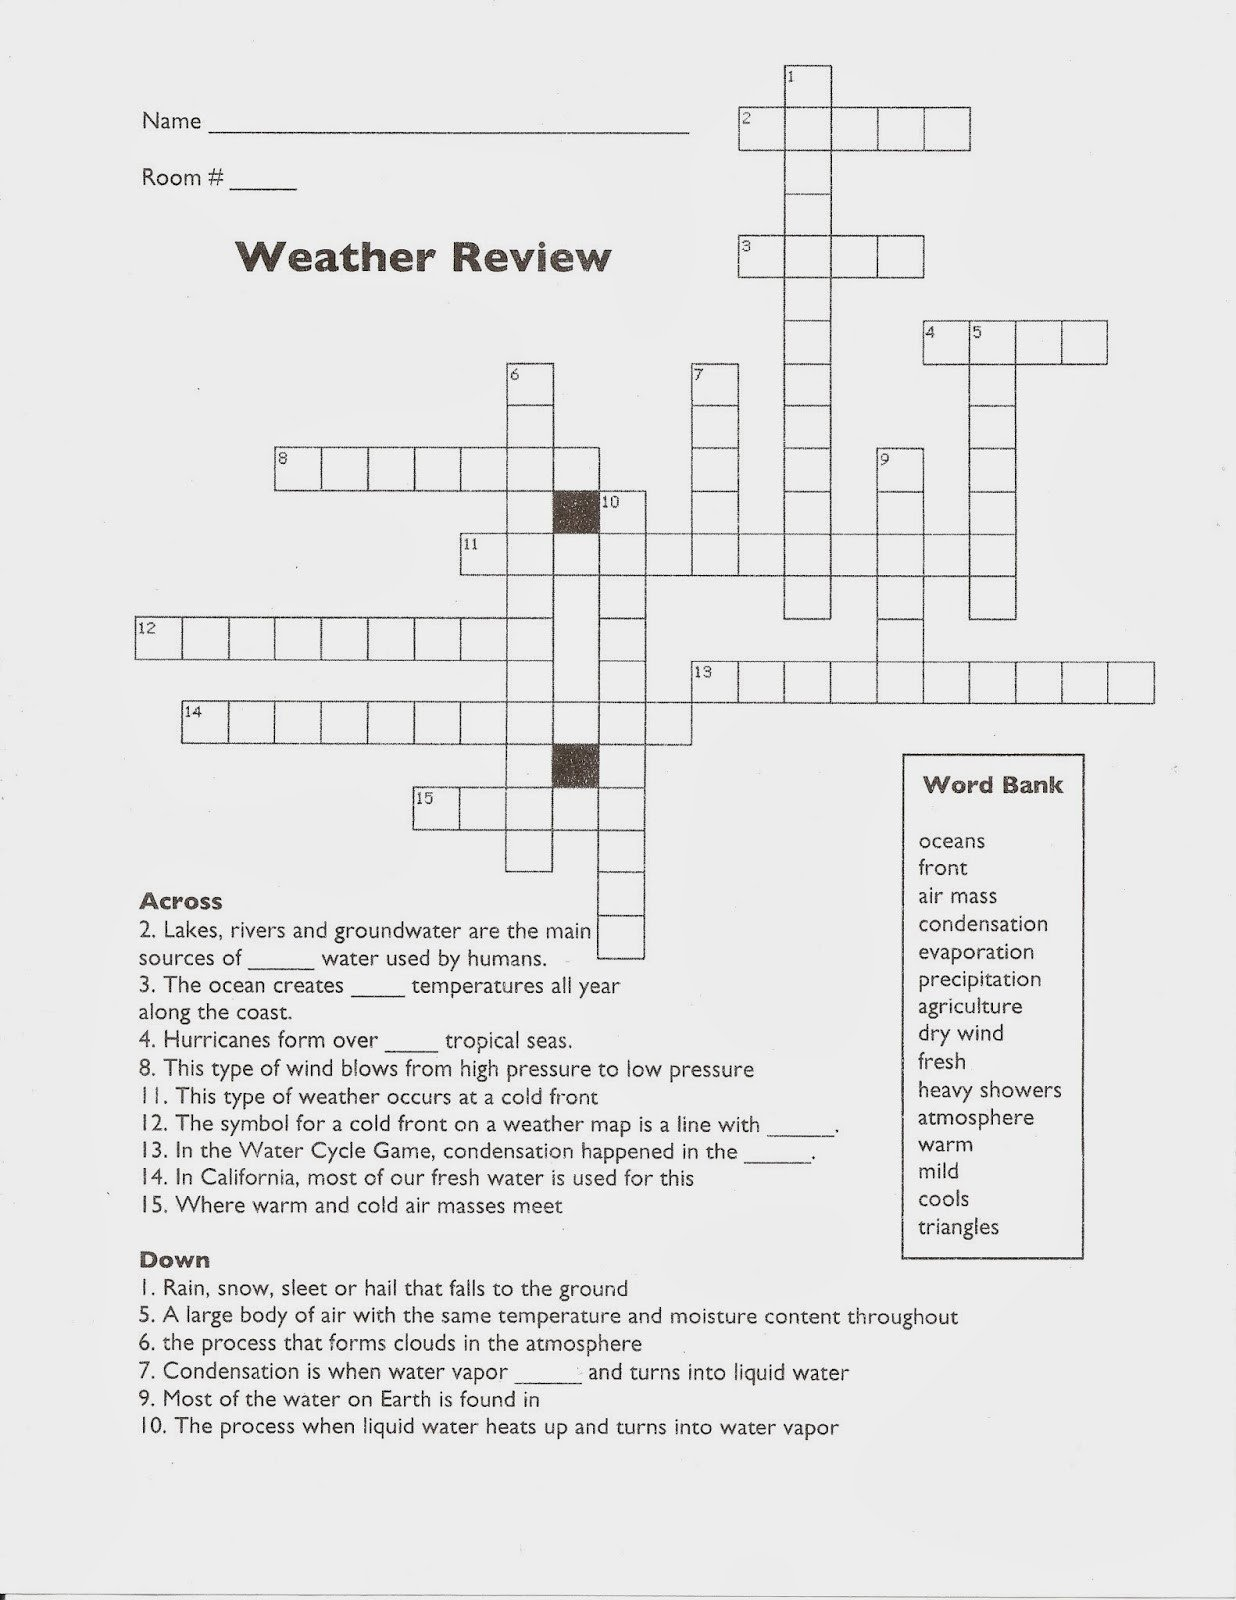 Weather and Climate Worksheets Weather Worksheet New 696 Weather Climate Worksheets 5th Grade